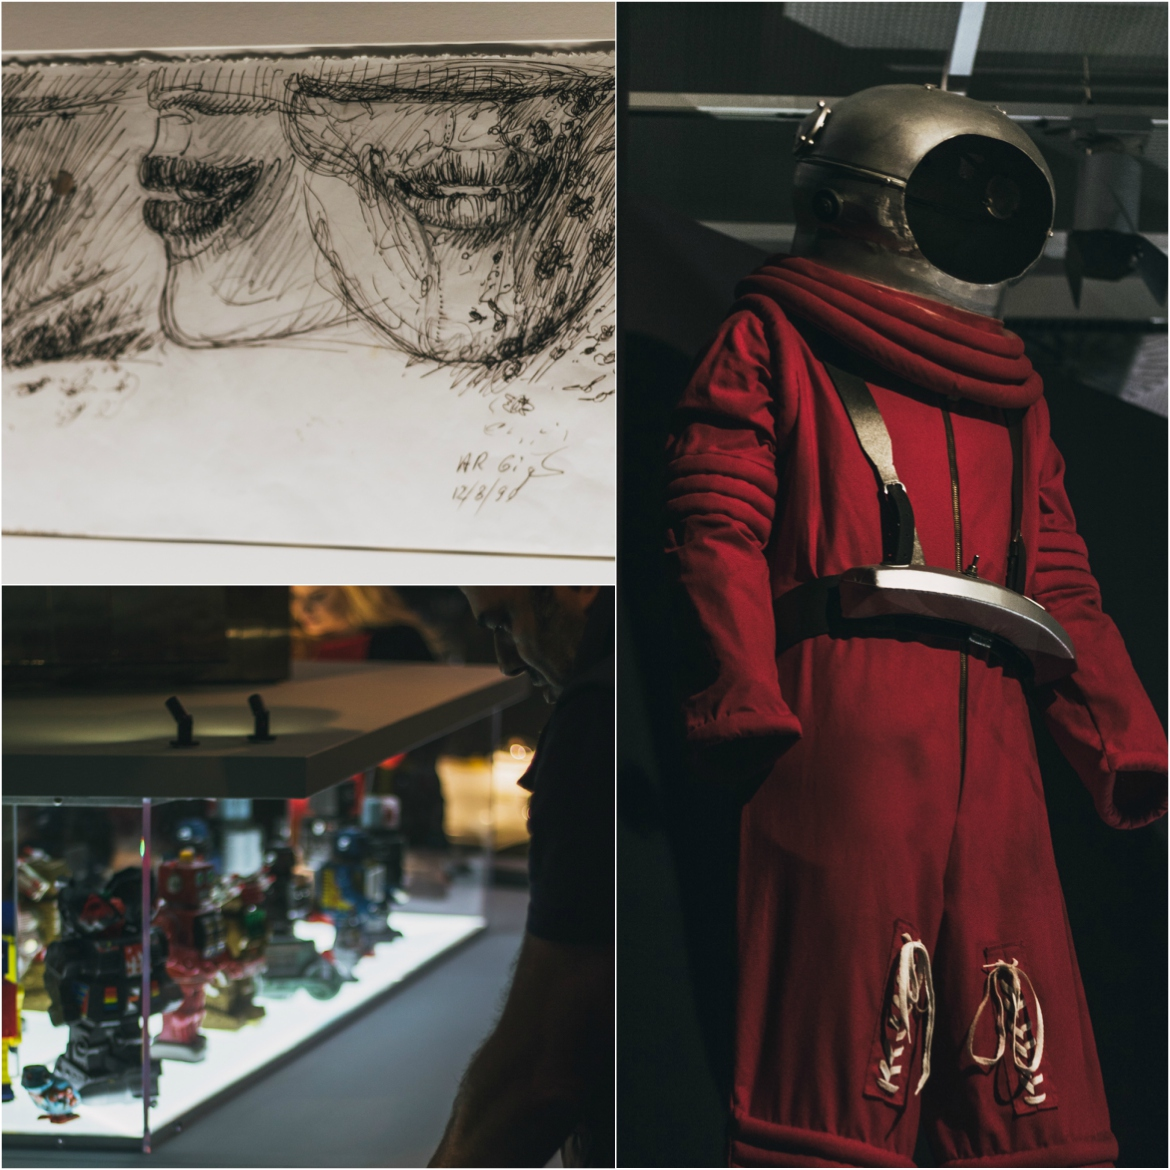 From sketches to robots and astronauts, the exhibition includes a wide range of exhibits